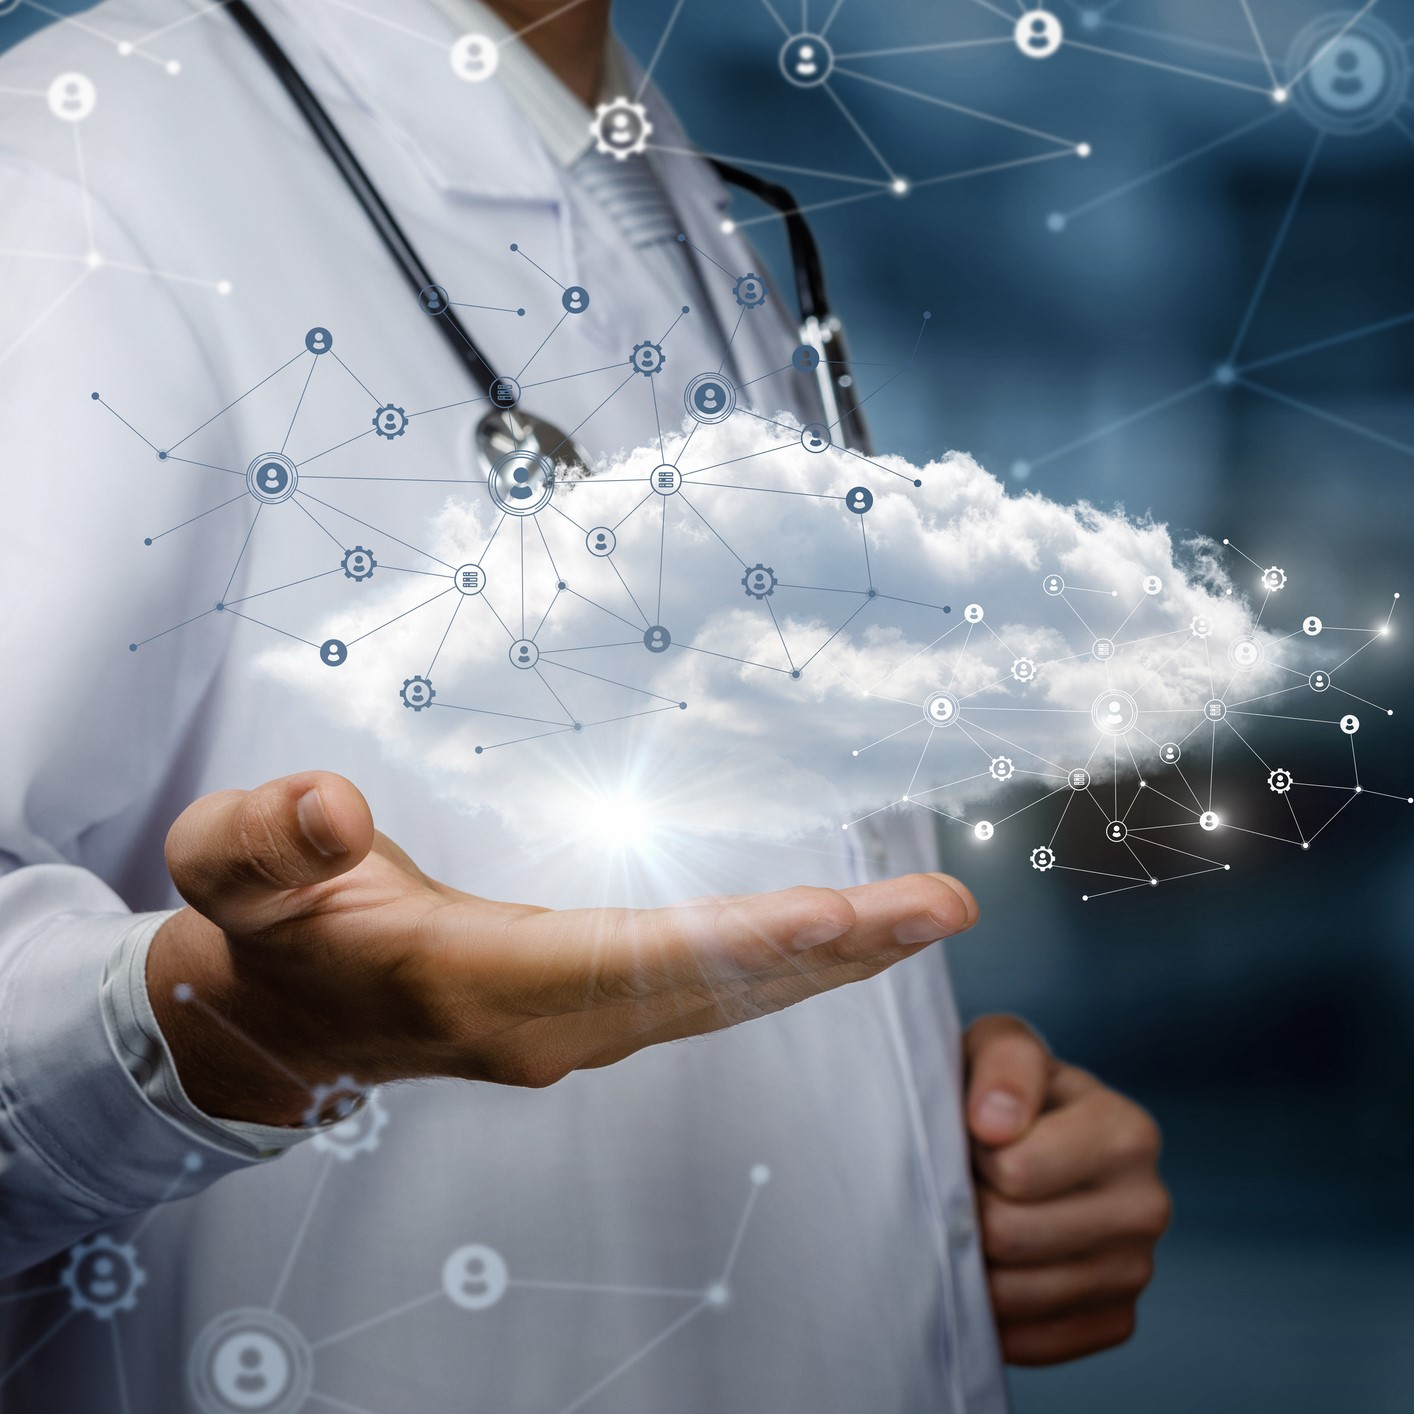 How Scientific Collaboration Can Be Fueled by the Cloud